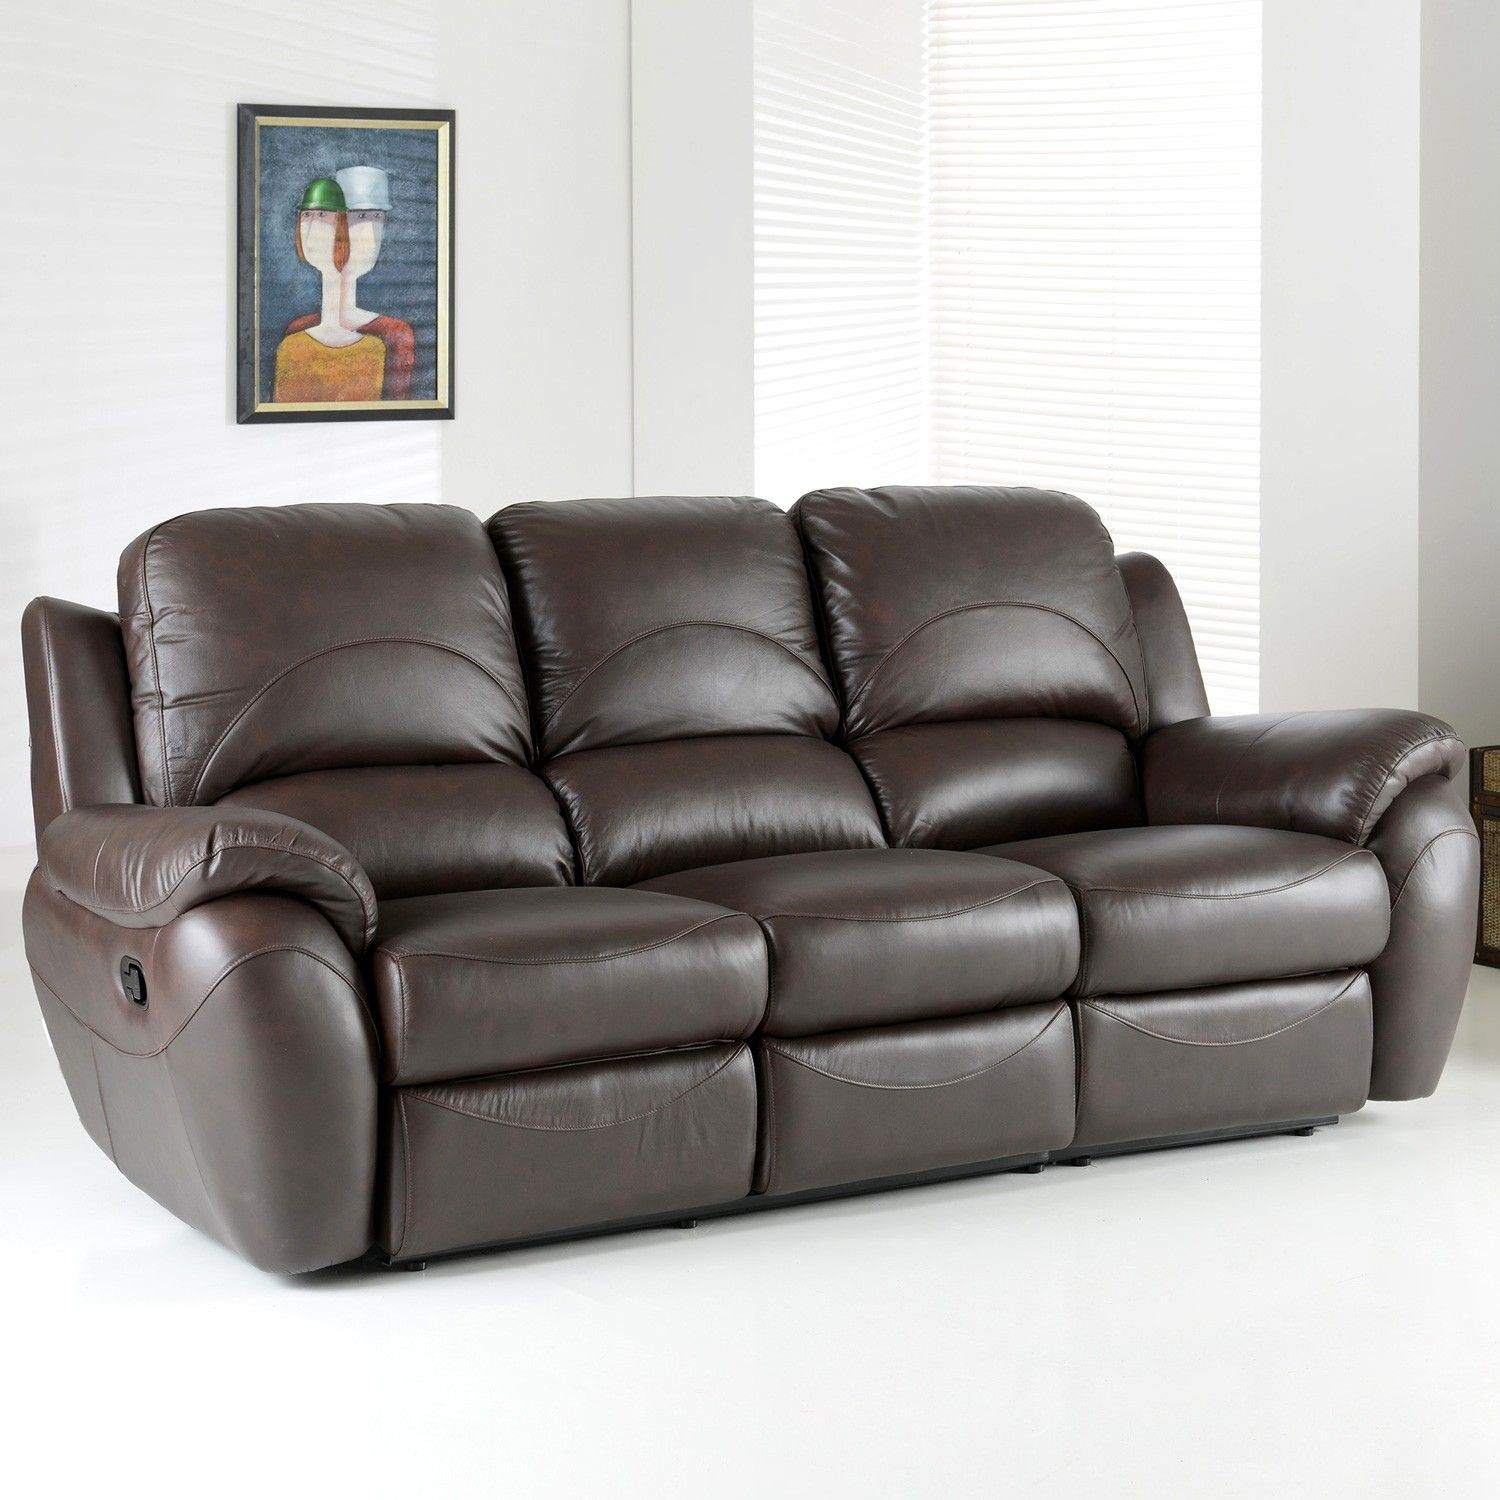 Merveilleux Living Room Furniture Dark Brown Full Grain Leather Recliner Sofa In White  Living Room Lazy Boy